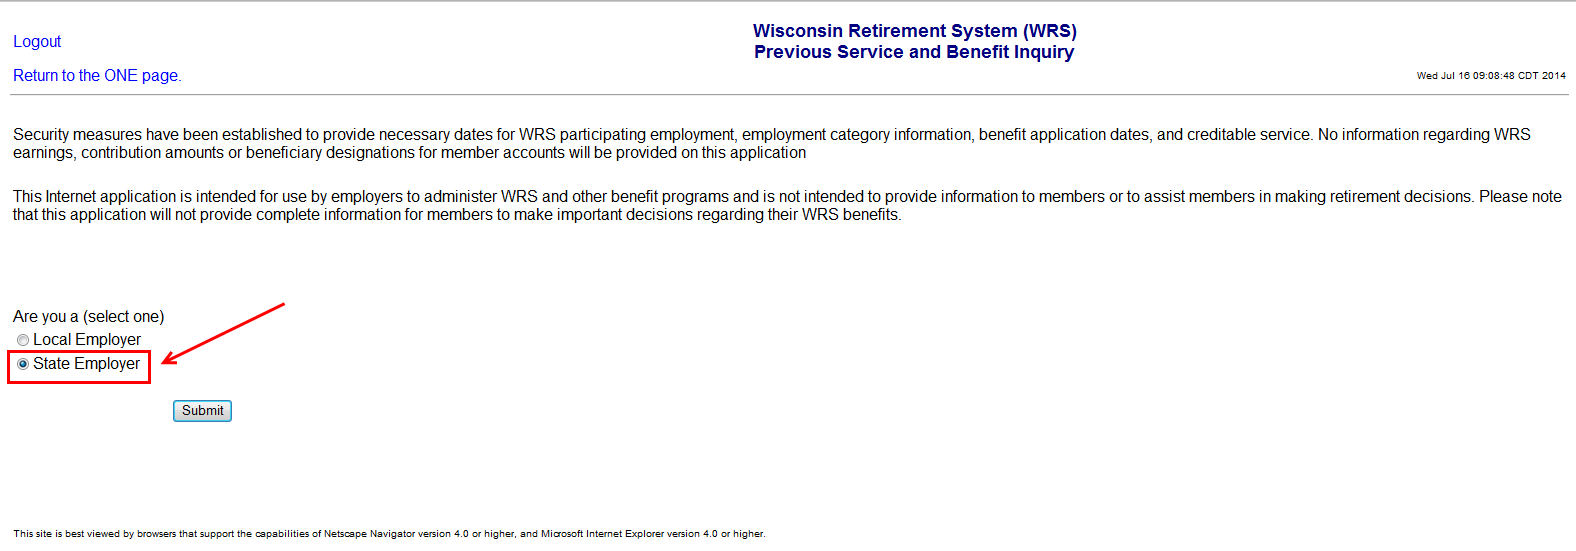 https://kb.wisc.edu/images/group426/41925/Employer_Verification.png